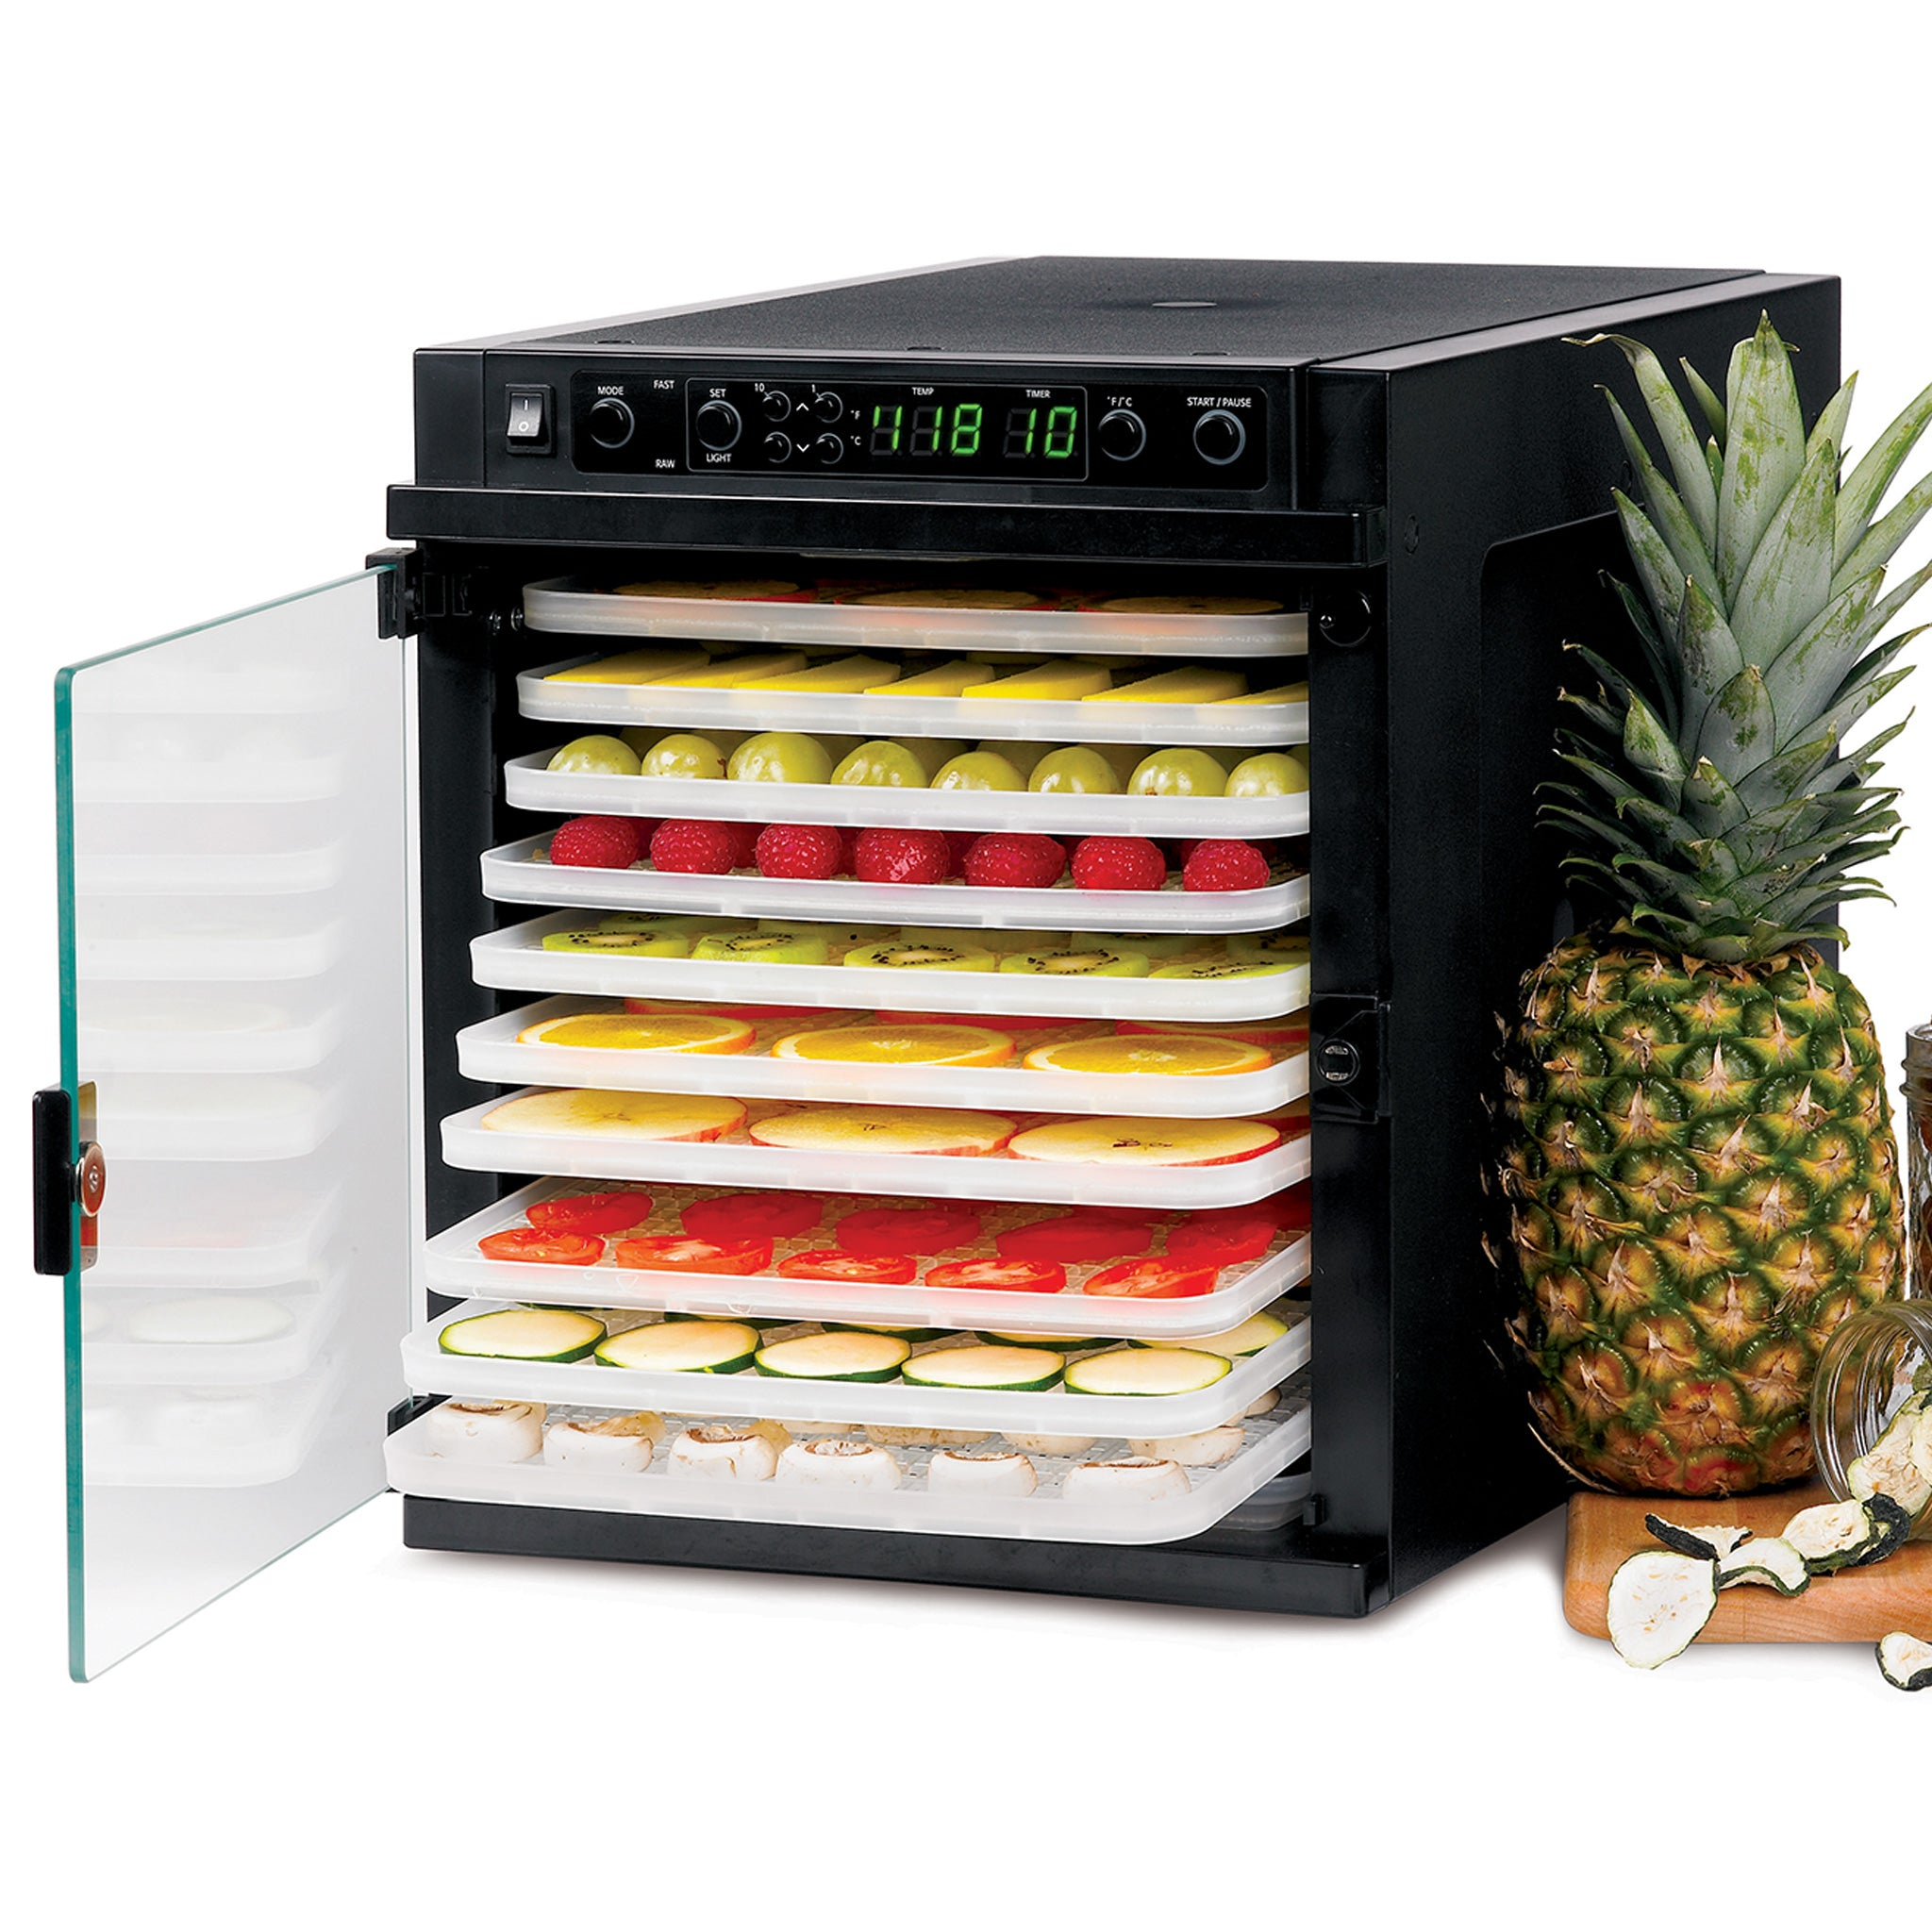 Sedona Express Food Dehydrator with BPA-Free Plastic Trays SDE-P6280 - Tribest